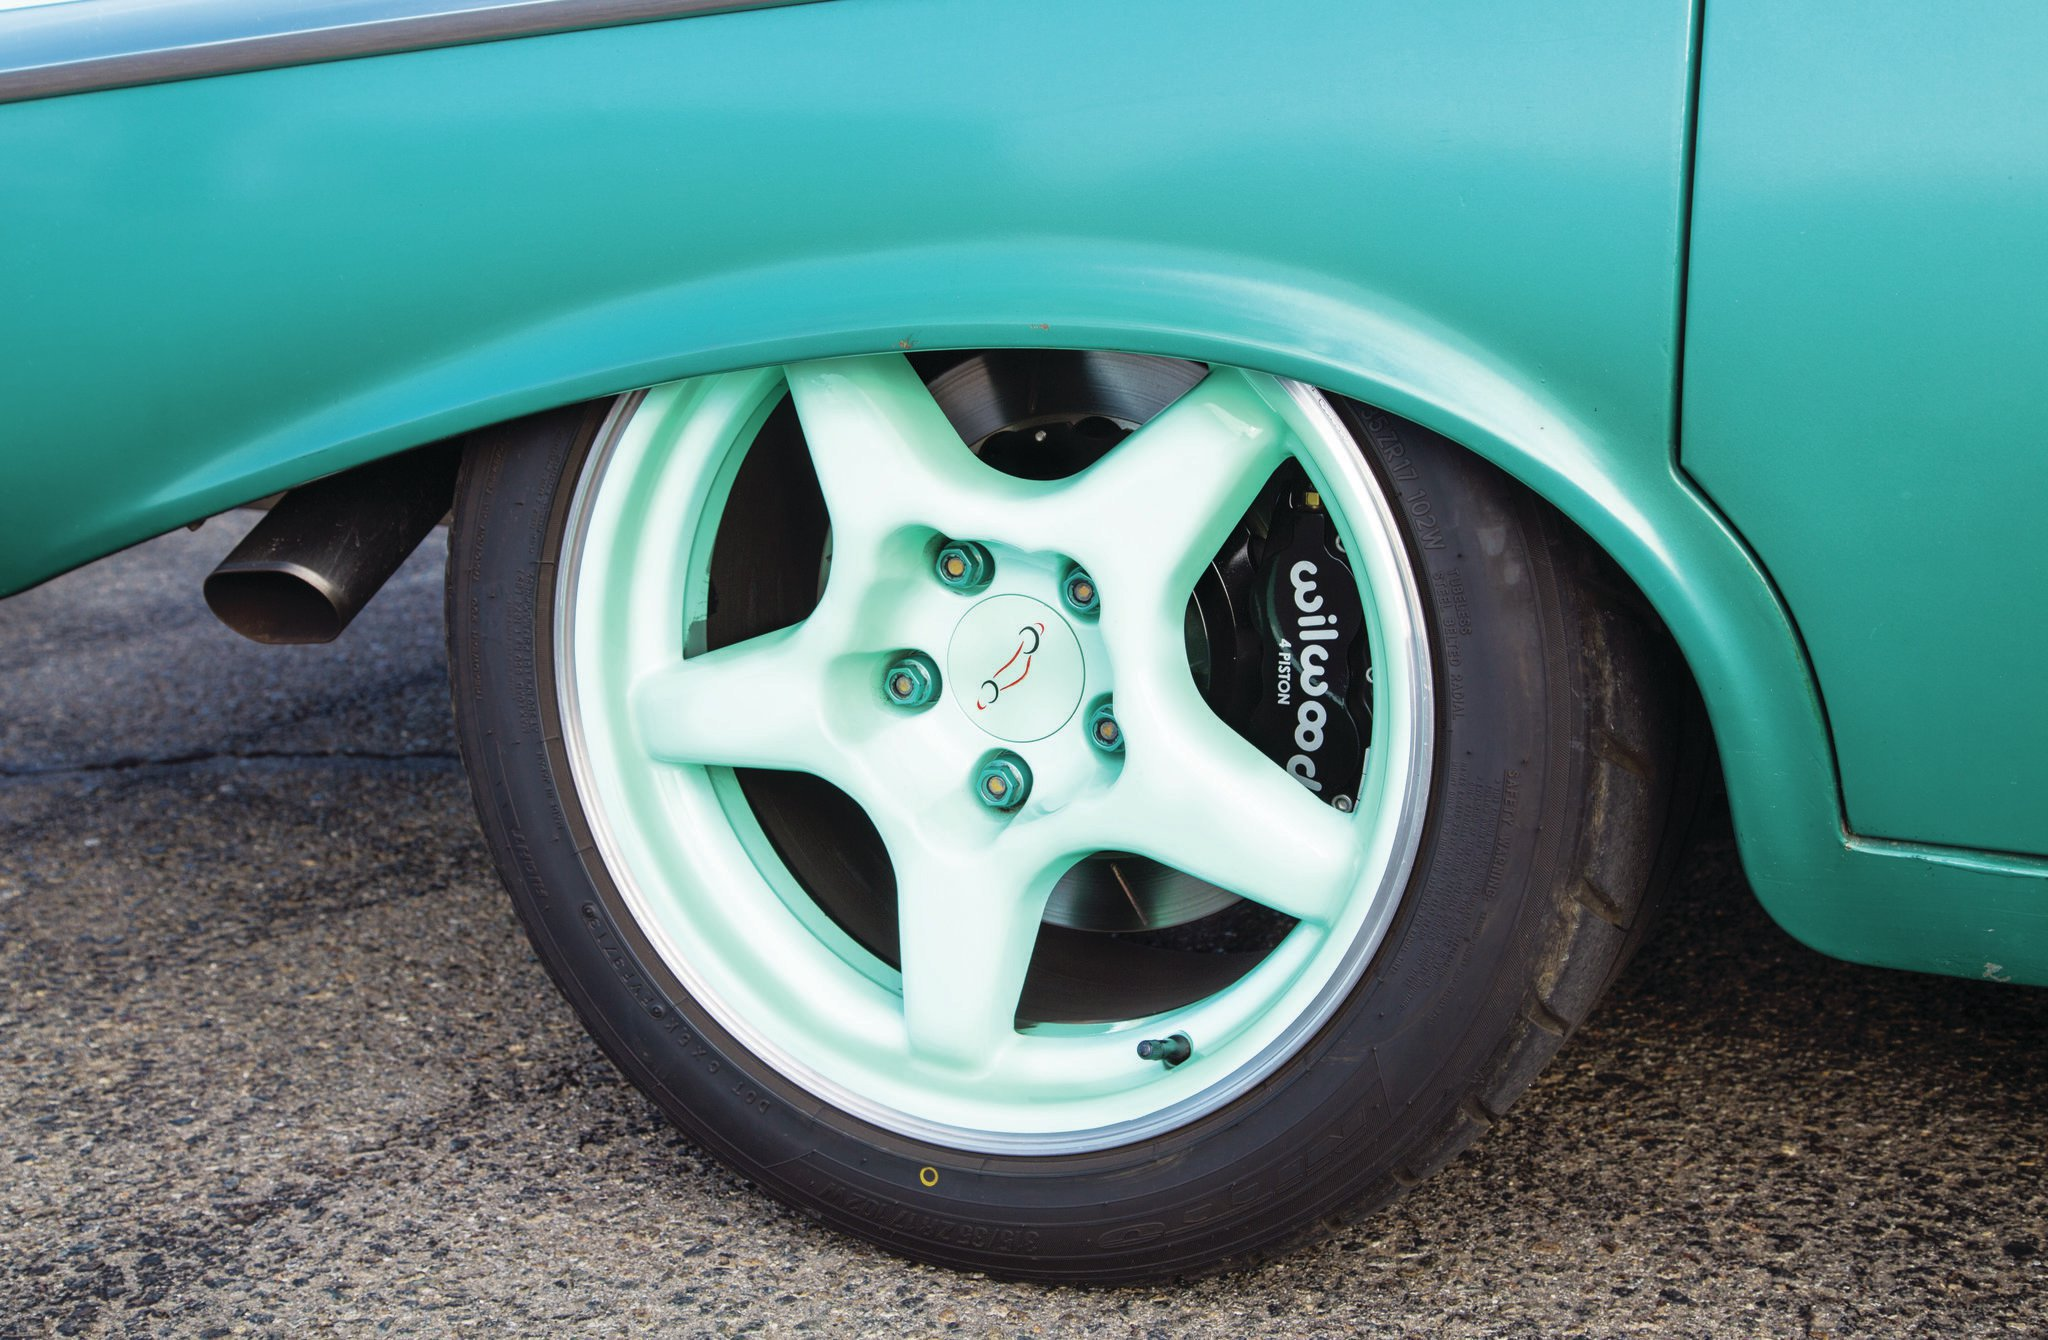 The Wilwood six-piston brakes peek through the 1996 ZR1 17x11-inch Surf Green painted wheels and Nitto 315/35R17 tires. Wheel-opening flanges have been flattened for added tire clearance.